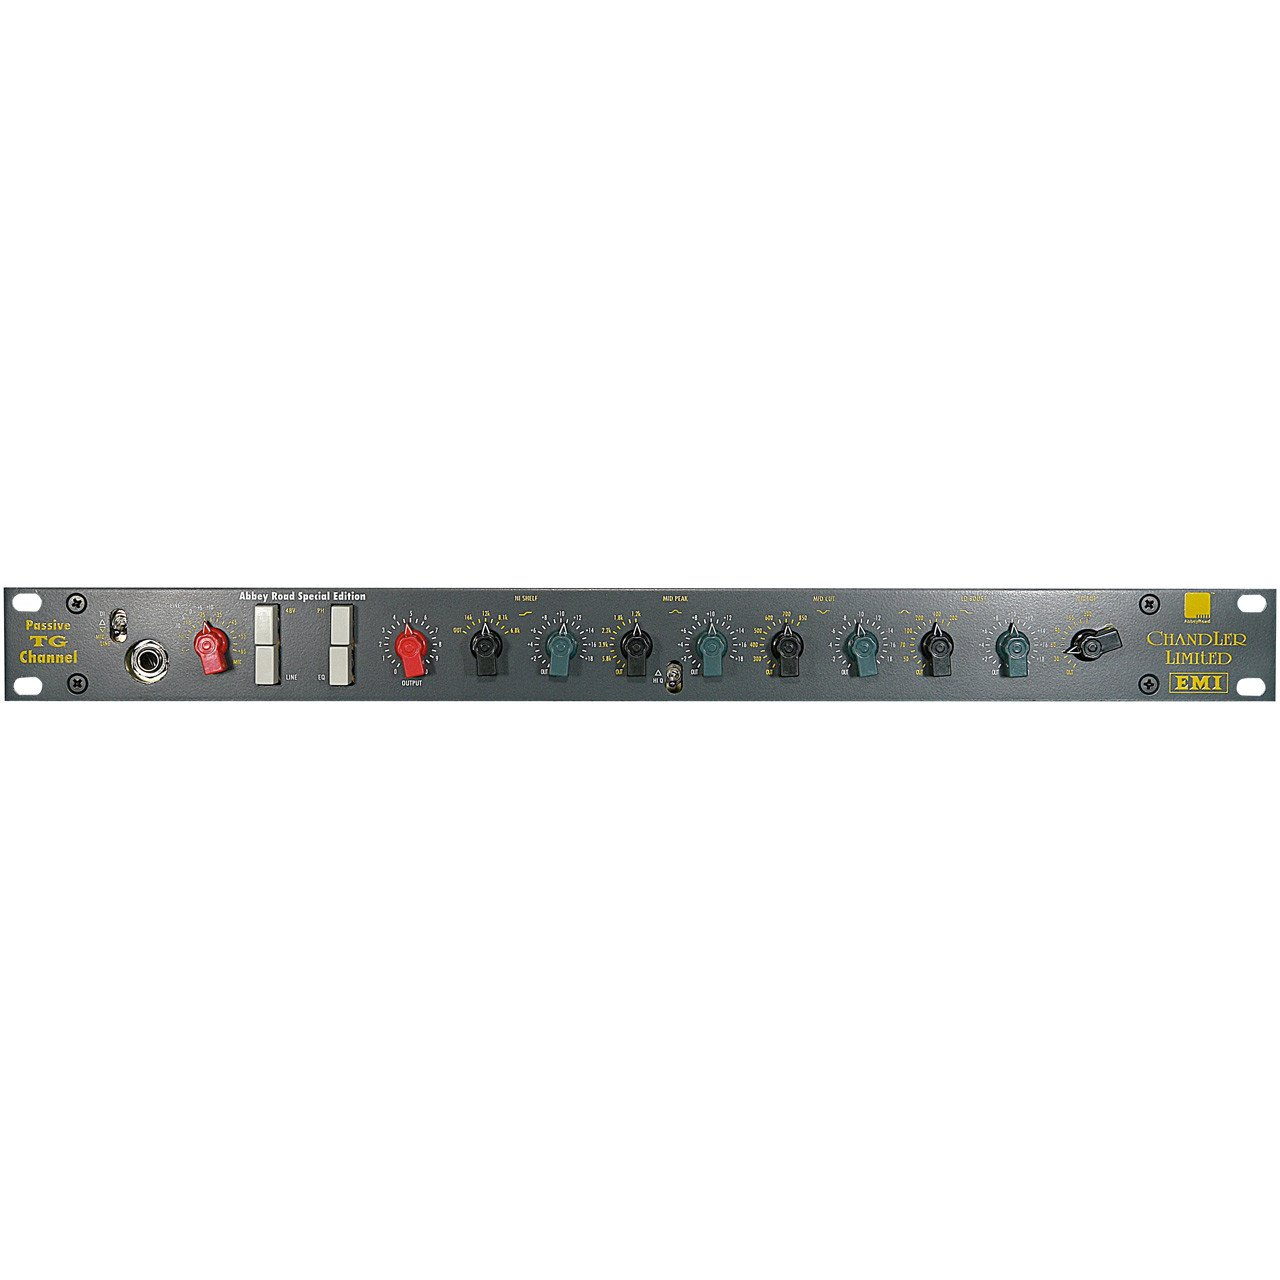 Preamps/Channel Strips - Chandler Limited TG Channel MKII